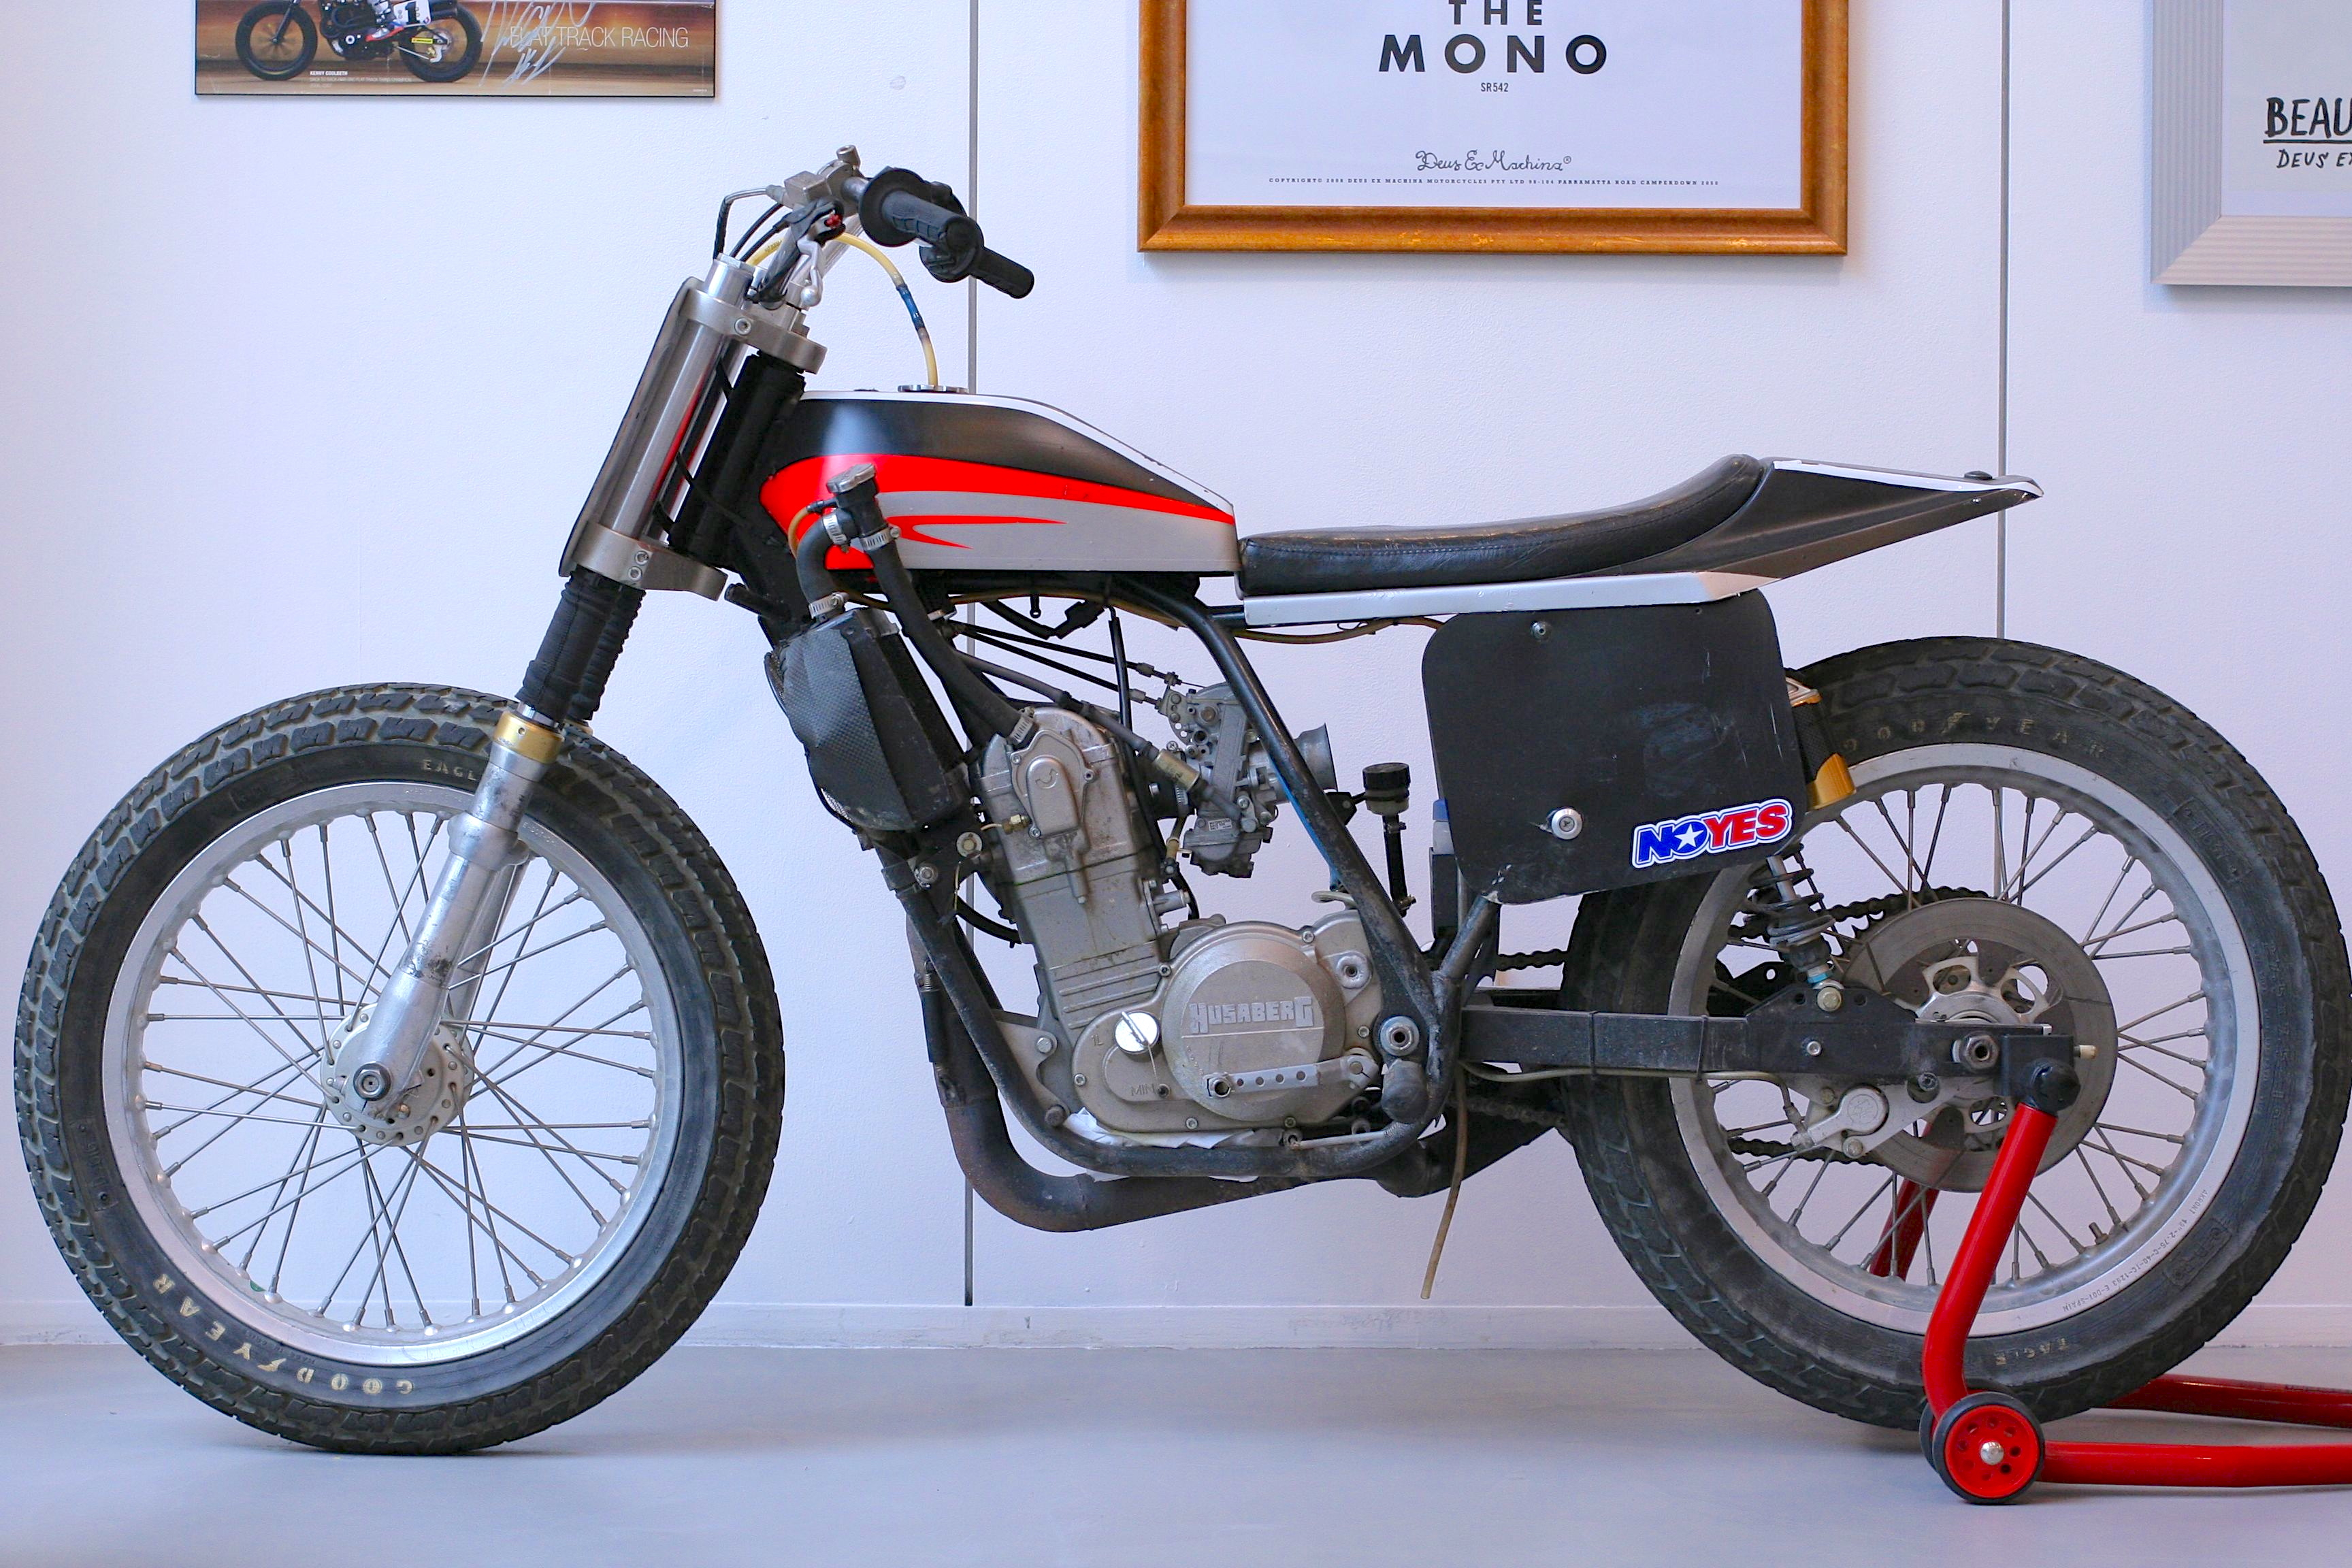 Flattracker Motorcycle Photo Of The Day